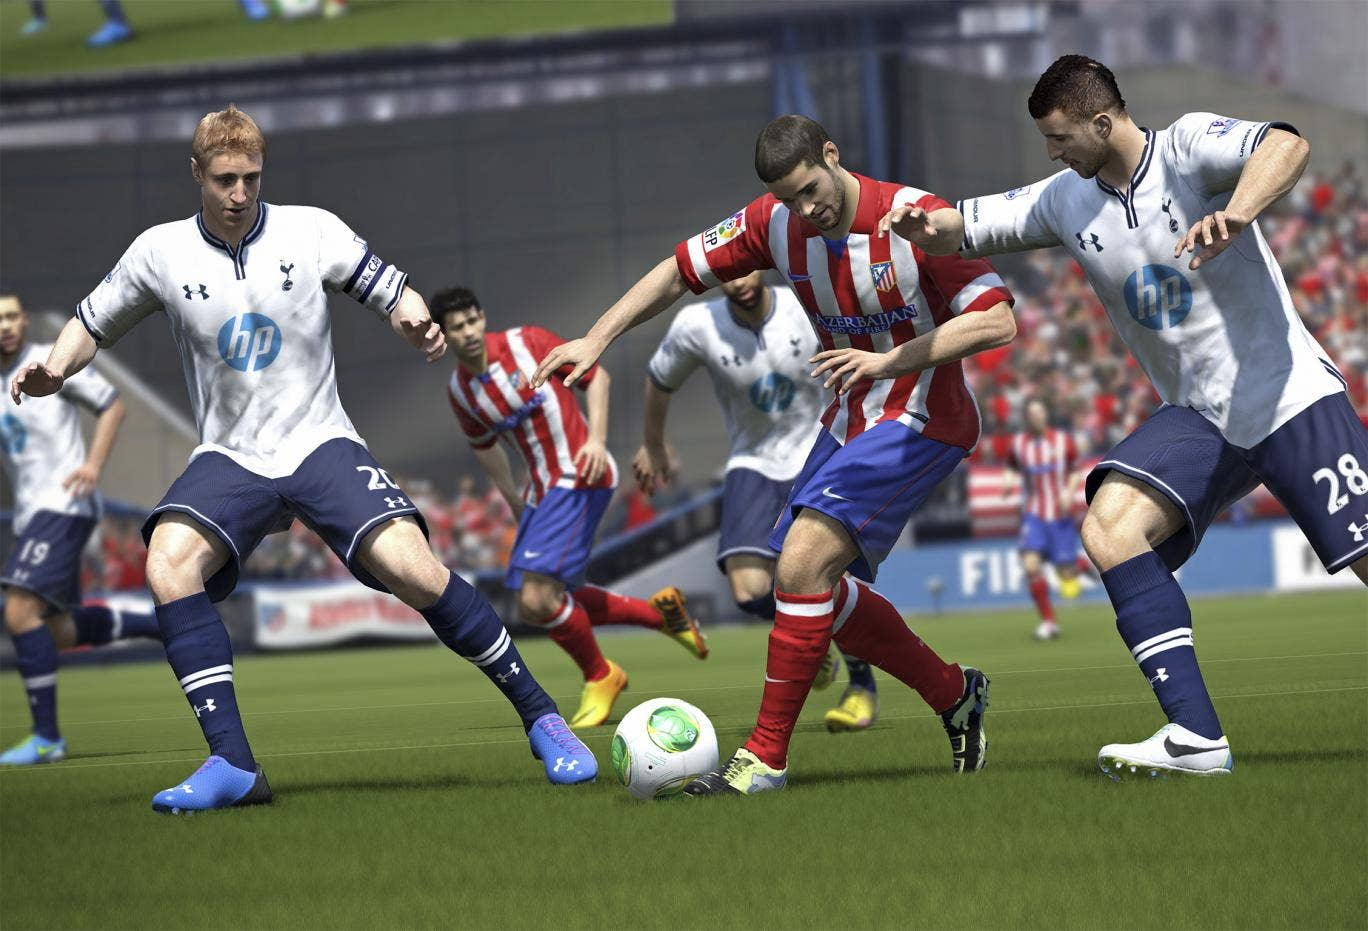 In the game: EA's 'Fifa 14' is very popular with online scouts